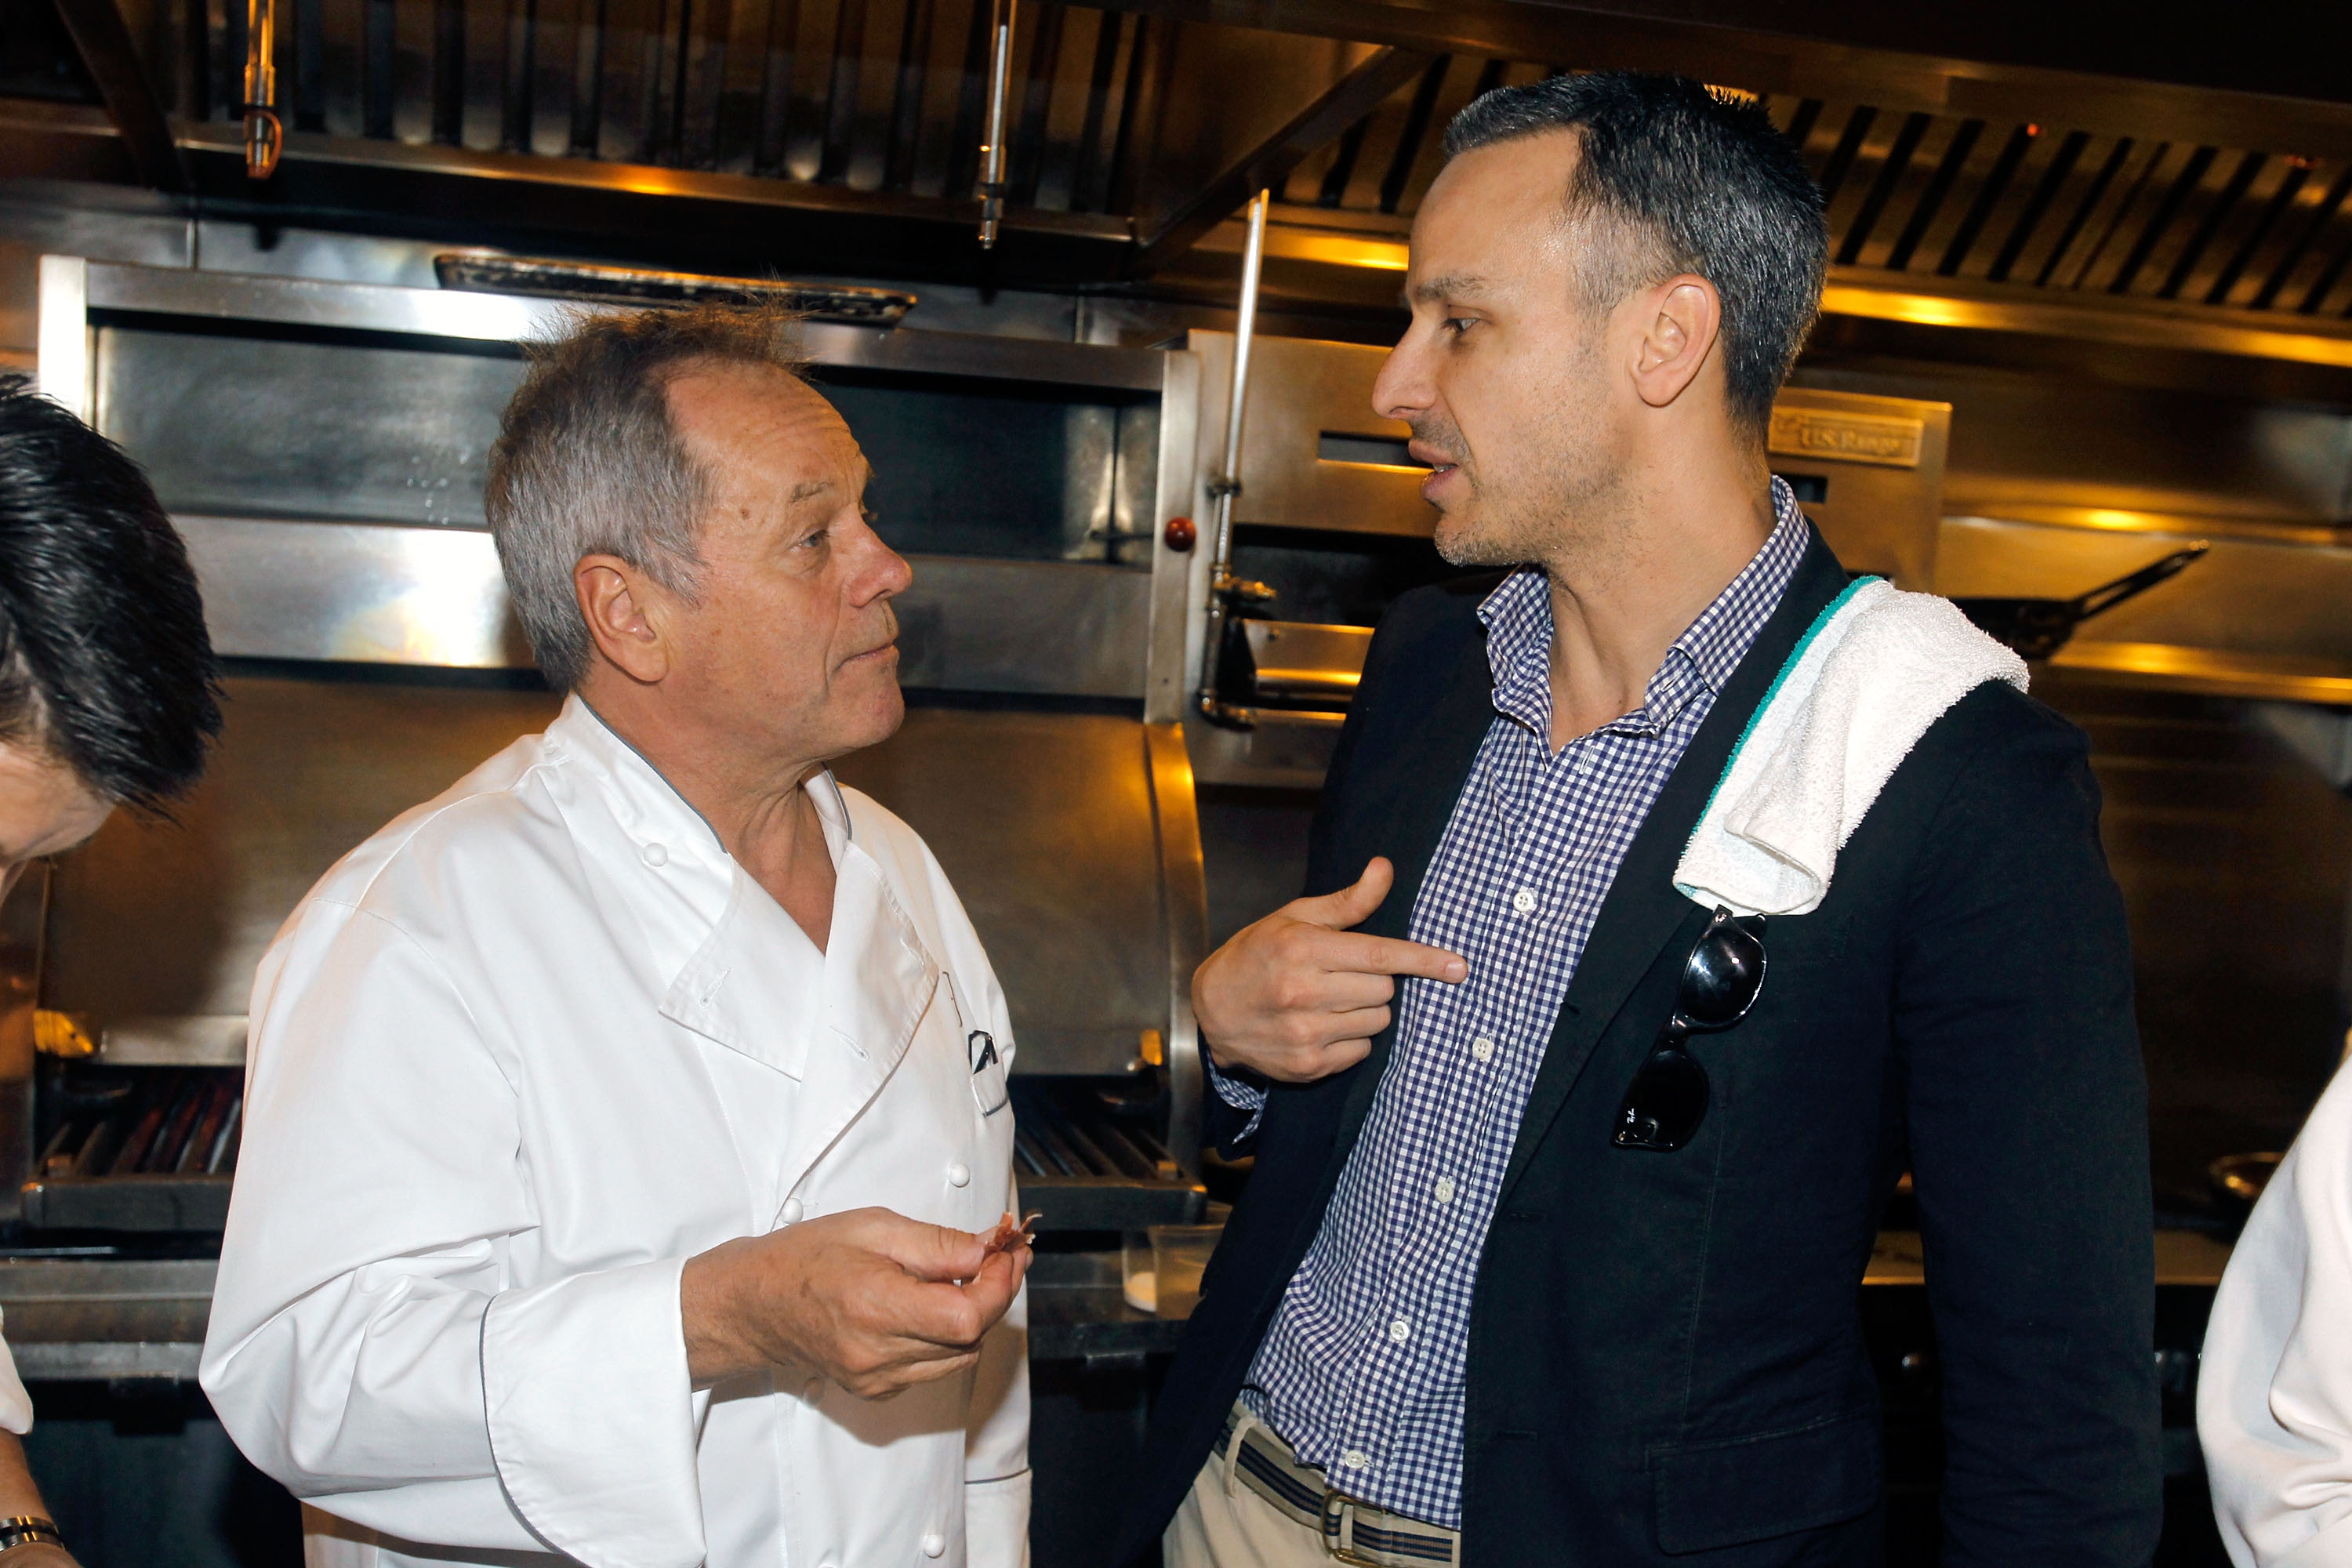 Wolfgang Puck and Adam Rapoport at Spago's 20th anniversary lunch (photo credit: Isaac Brekken)